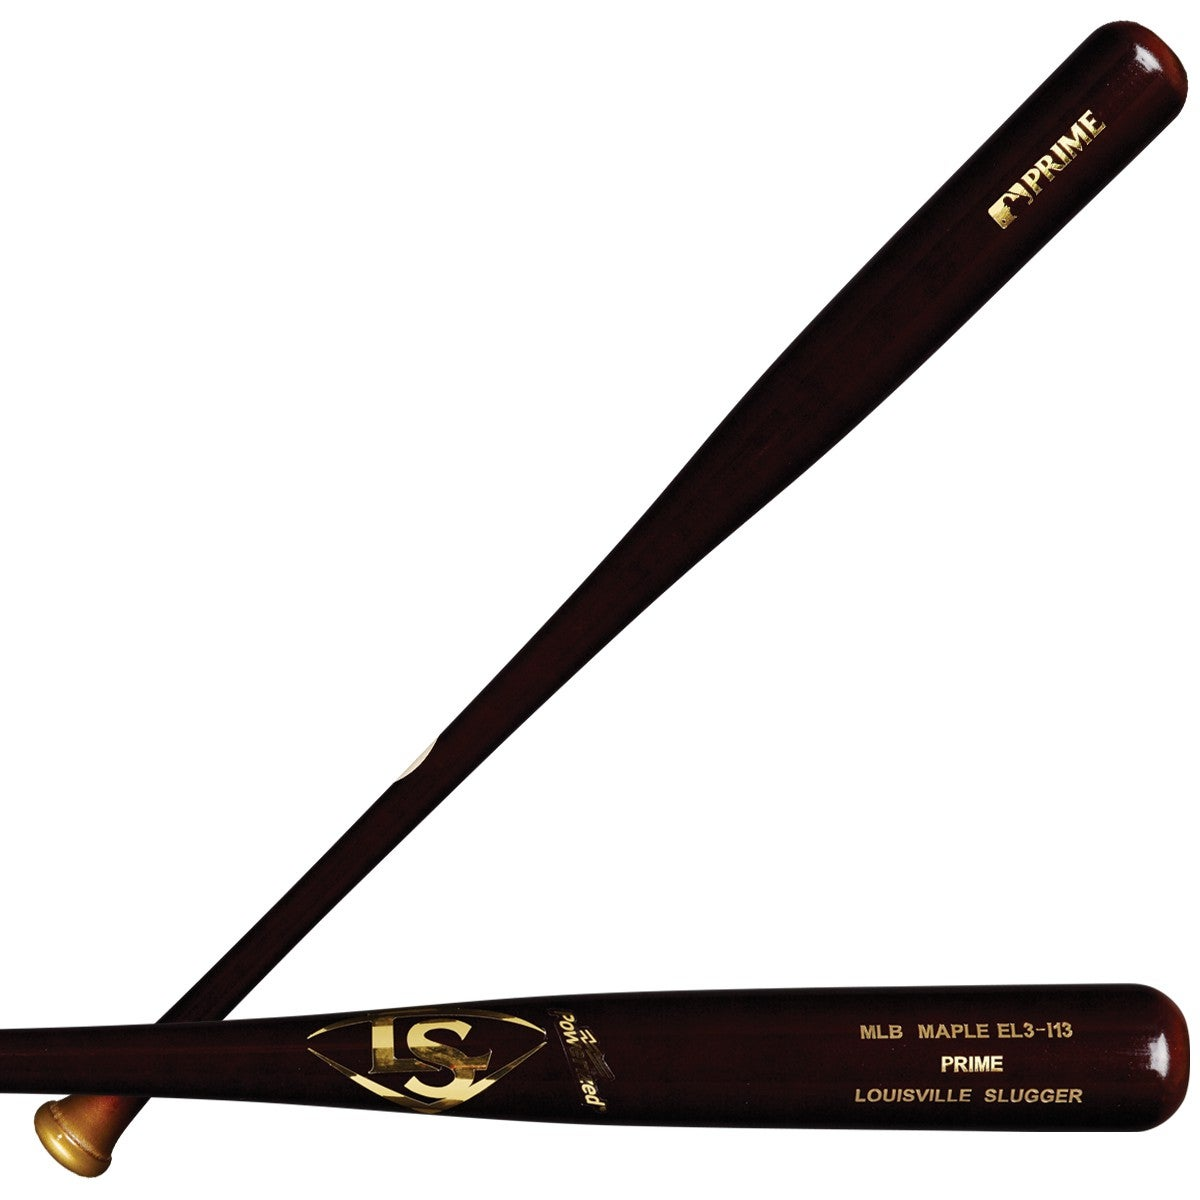 ? MLB Prime Maple EL3-I13 Hickory Baseball Bat